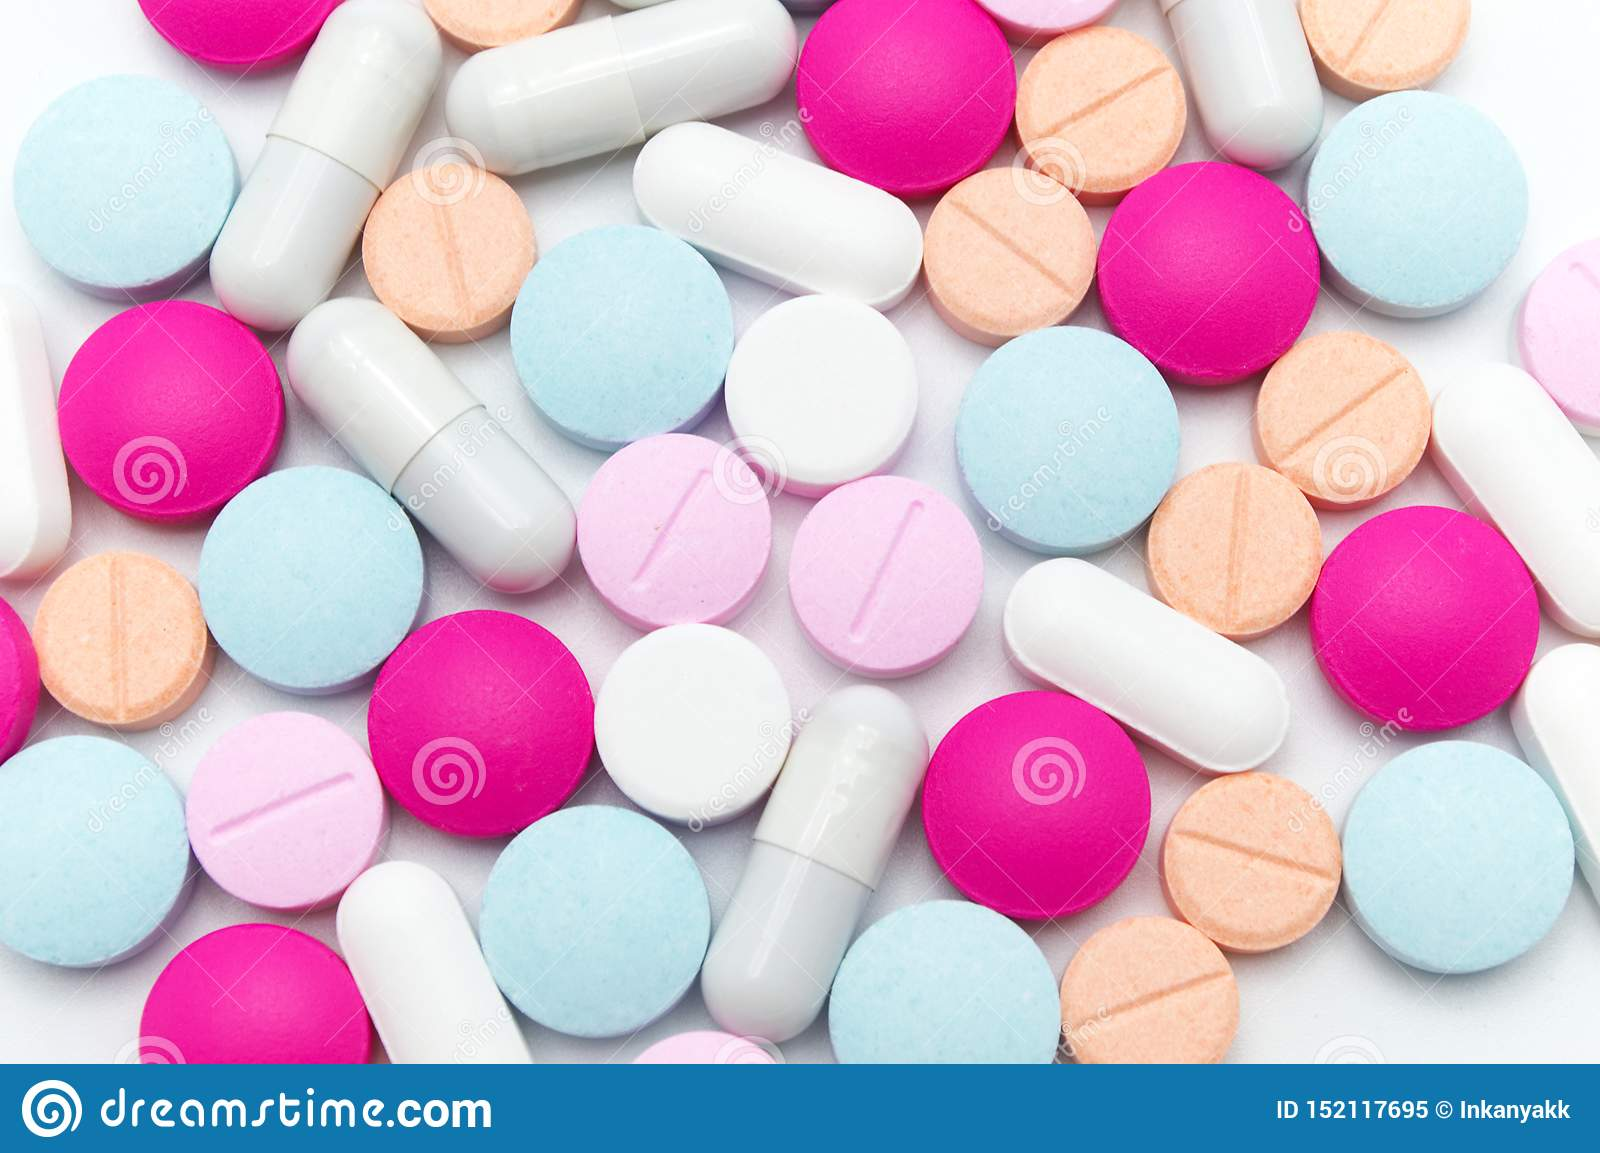 Different colorful pills or supplements for the treatment and health care.